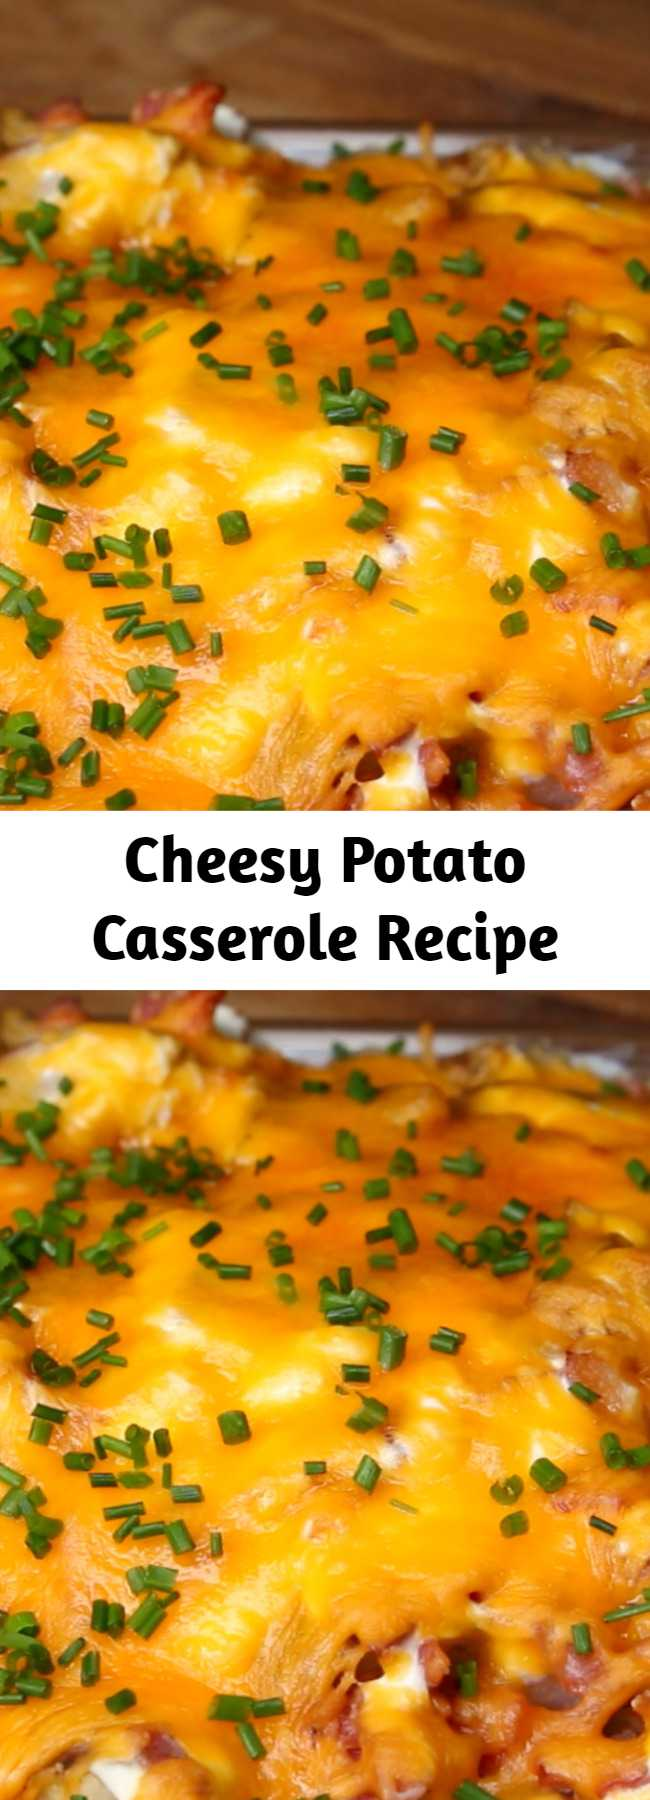 Cheesy Potato Casserole Recipe - This cheesy potato casserole is the perfect way to feed a family of picky eaters. With all of the components of beloved loaded potato skins (like bacon, sour cream, and cheese), it's practically impossible for anyone to dislike this casserole. It's make-ahead friendly, filling, and easily made vegetarian by omitting the bacon. If you're looking for the ultimate weeknight casserole, this is your recipe.